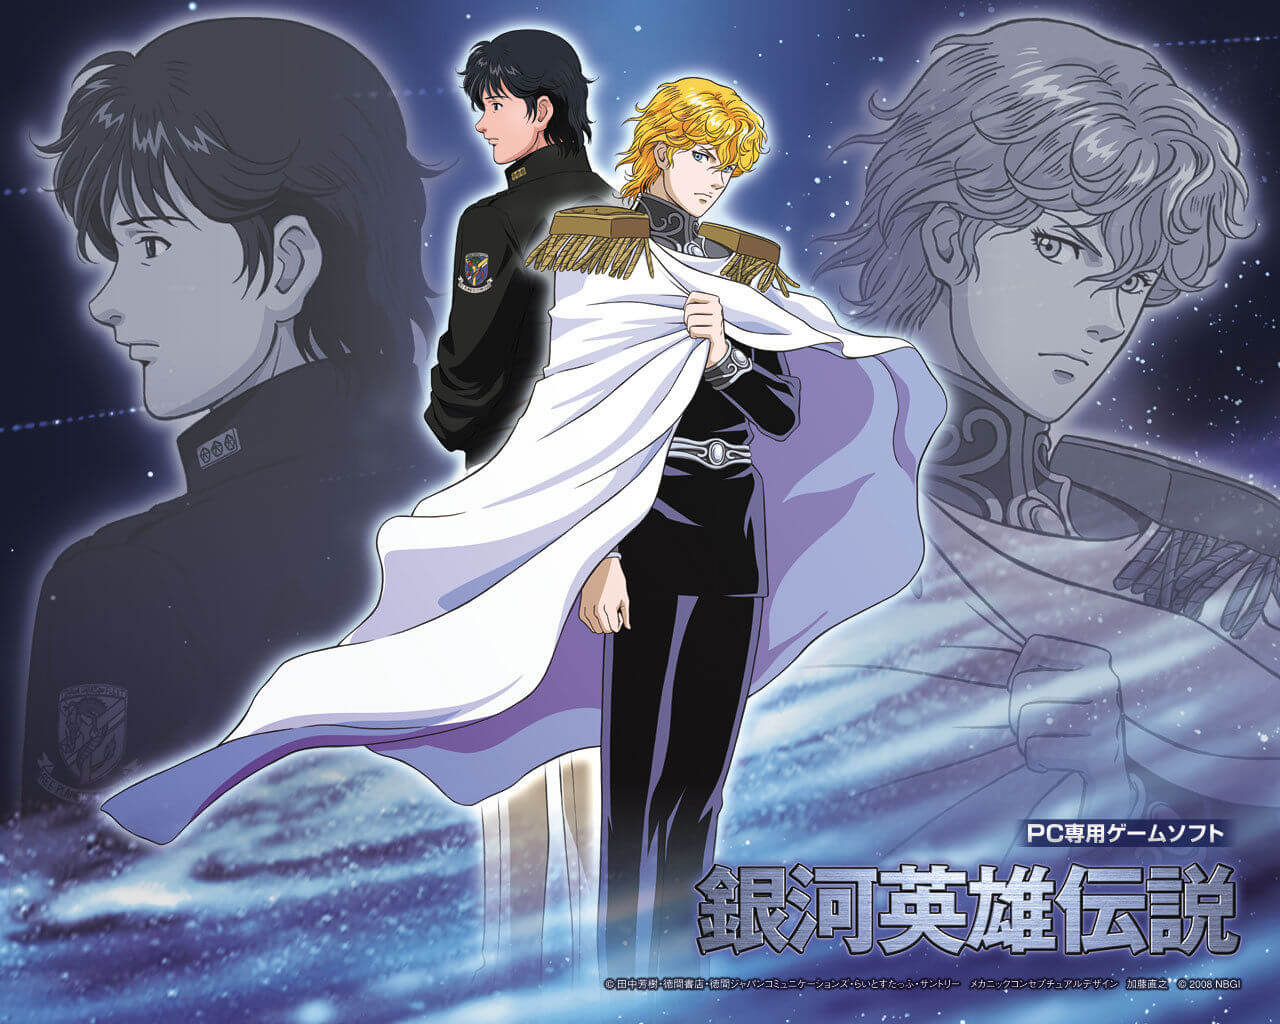 Legend of the Galactic Heroes (1988)